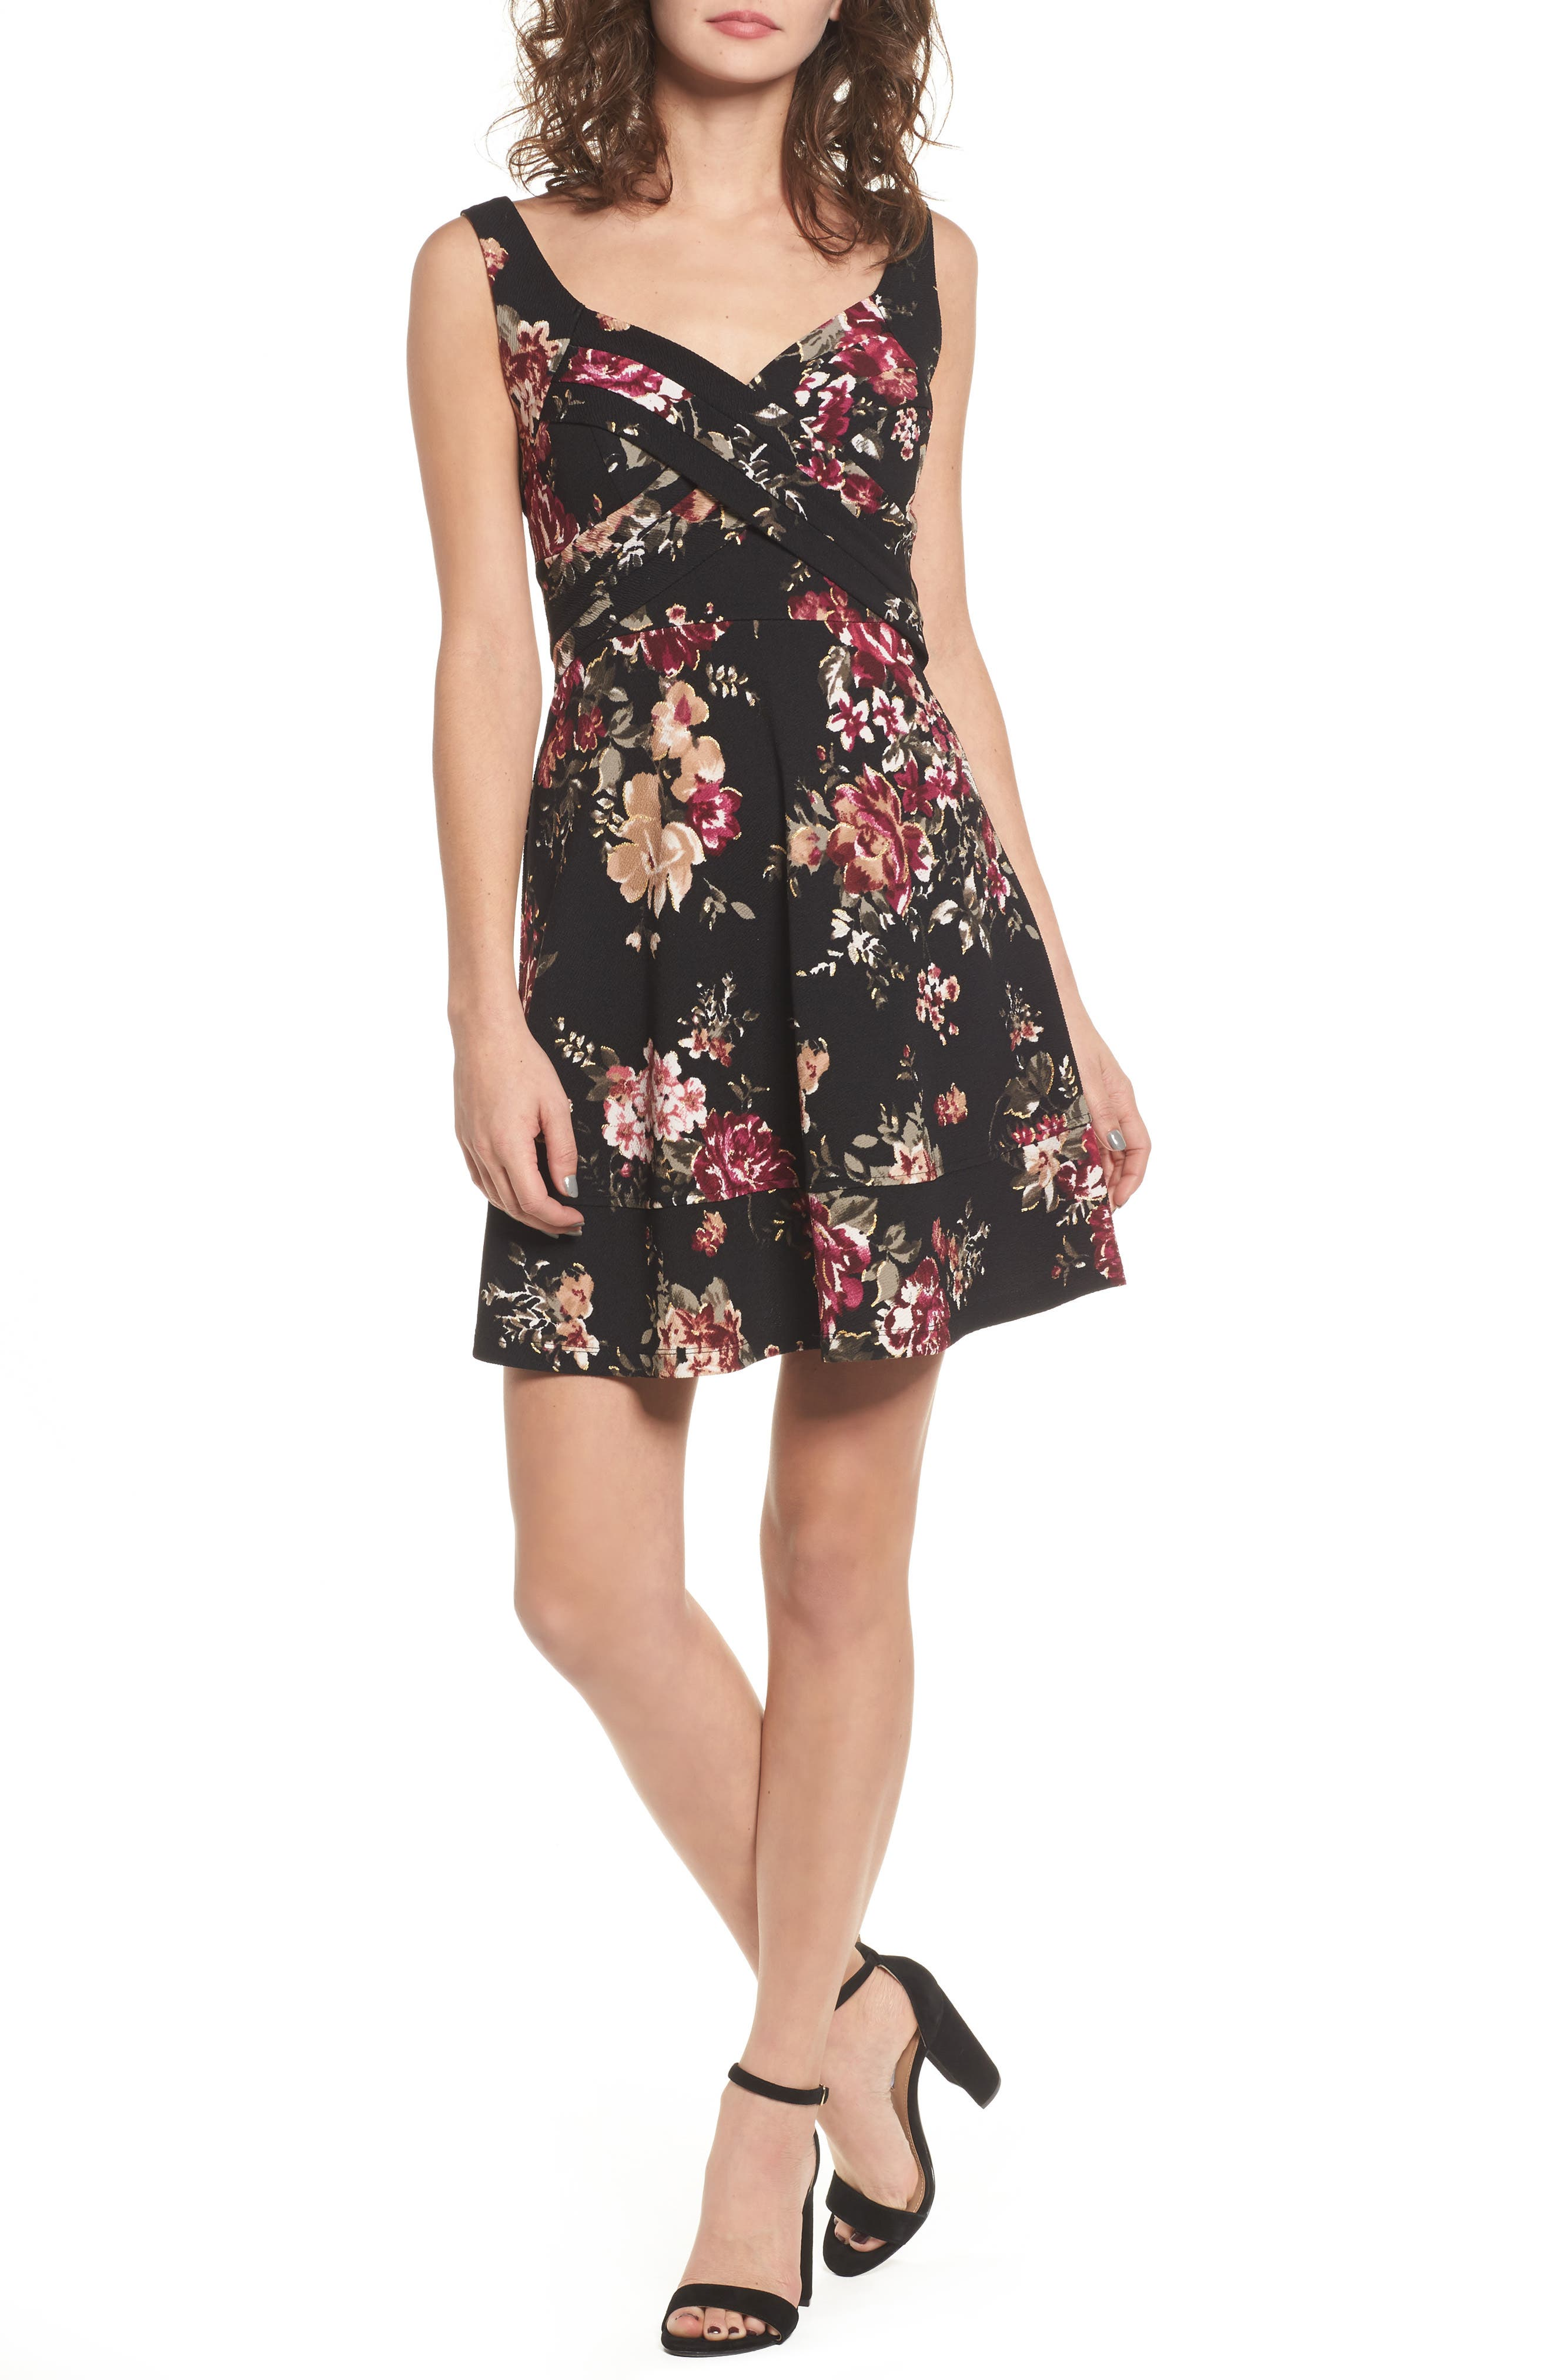 Love, Nickie Lew Floral Fit & Flare Dress